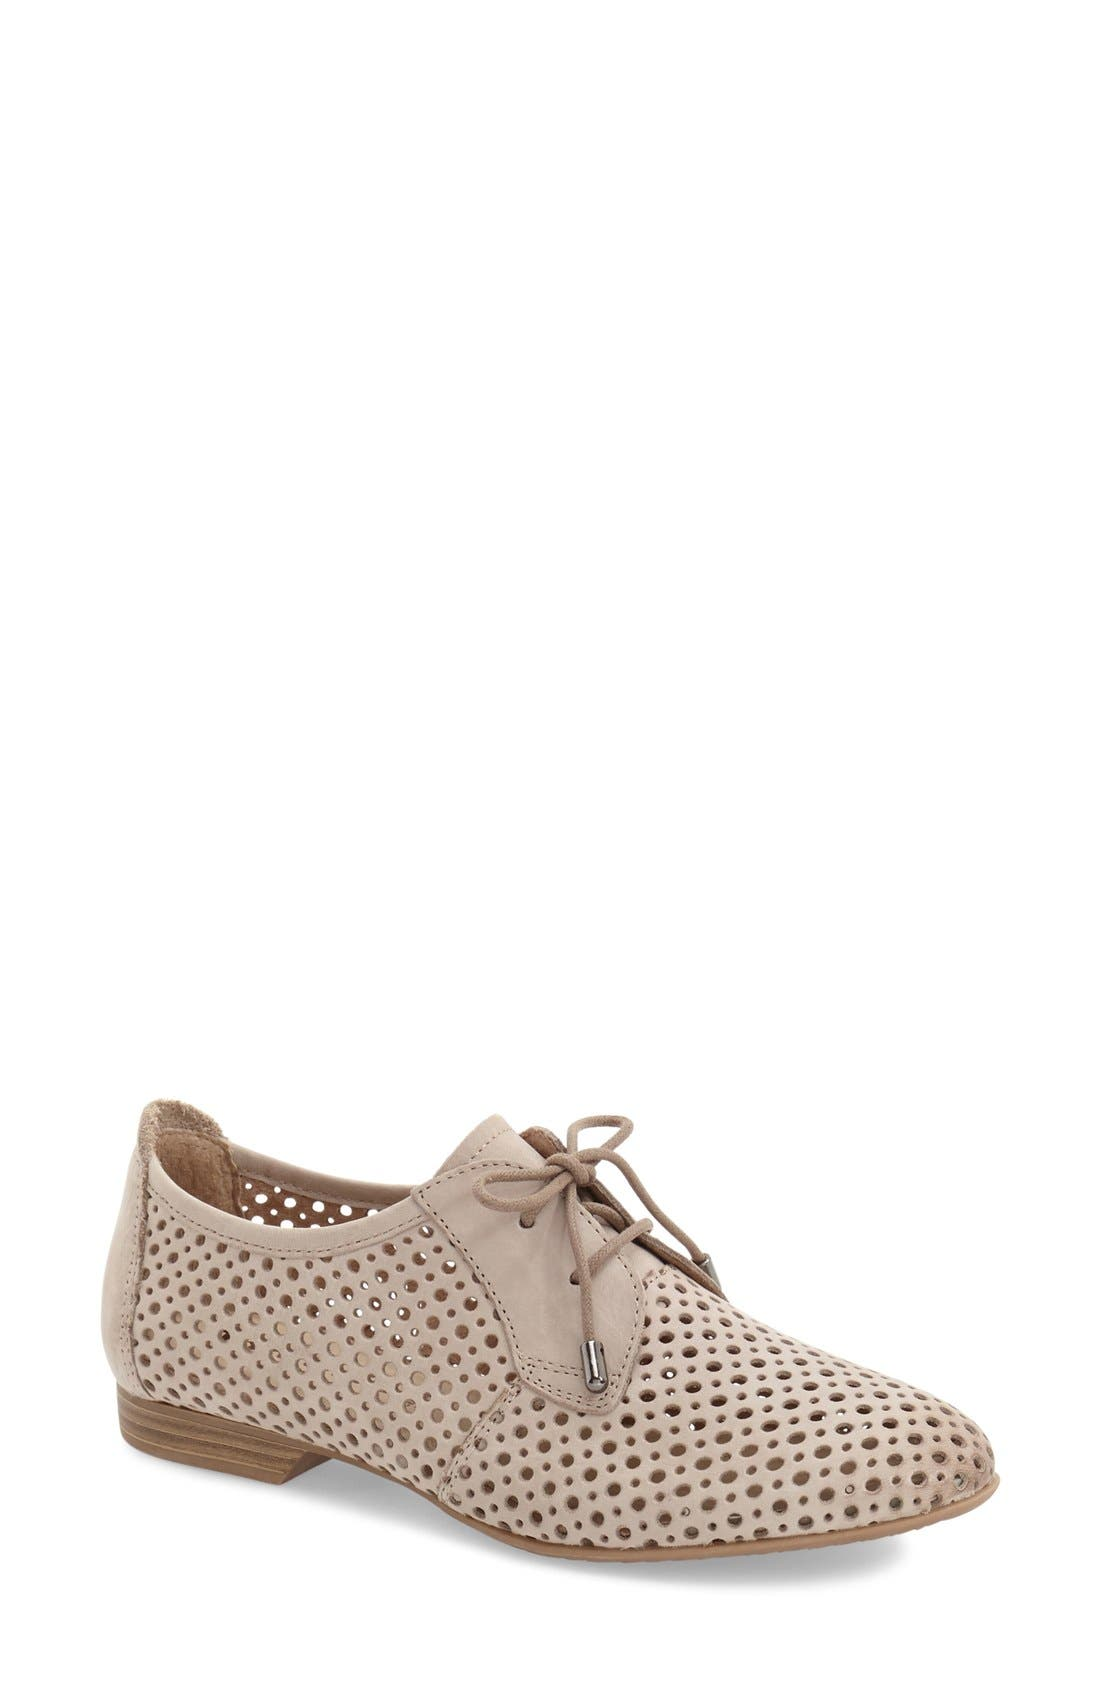 'Drene' Perforated Oxford,                         Main,                         color, 275